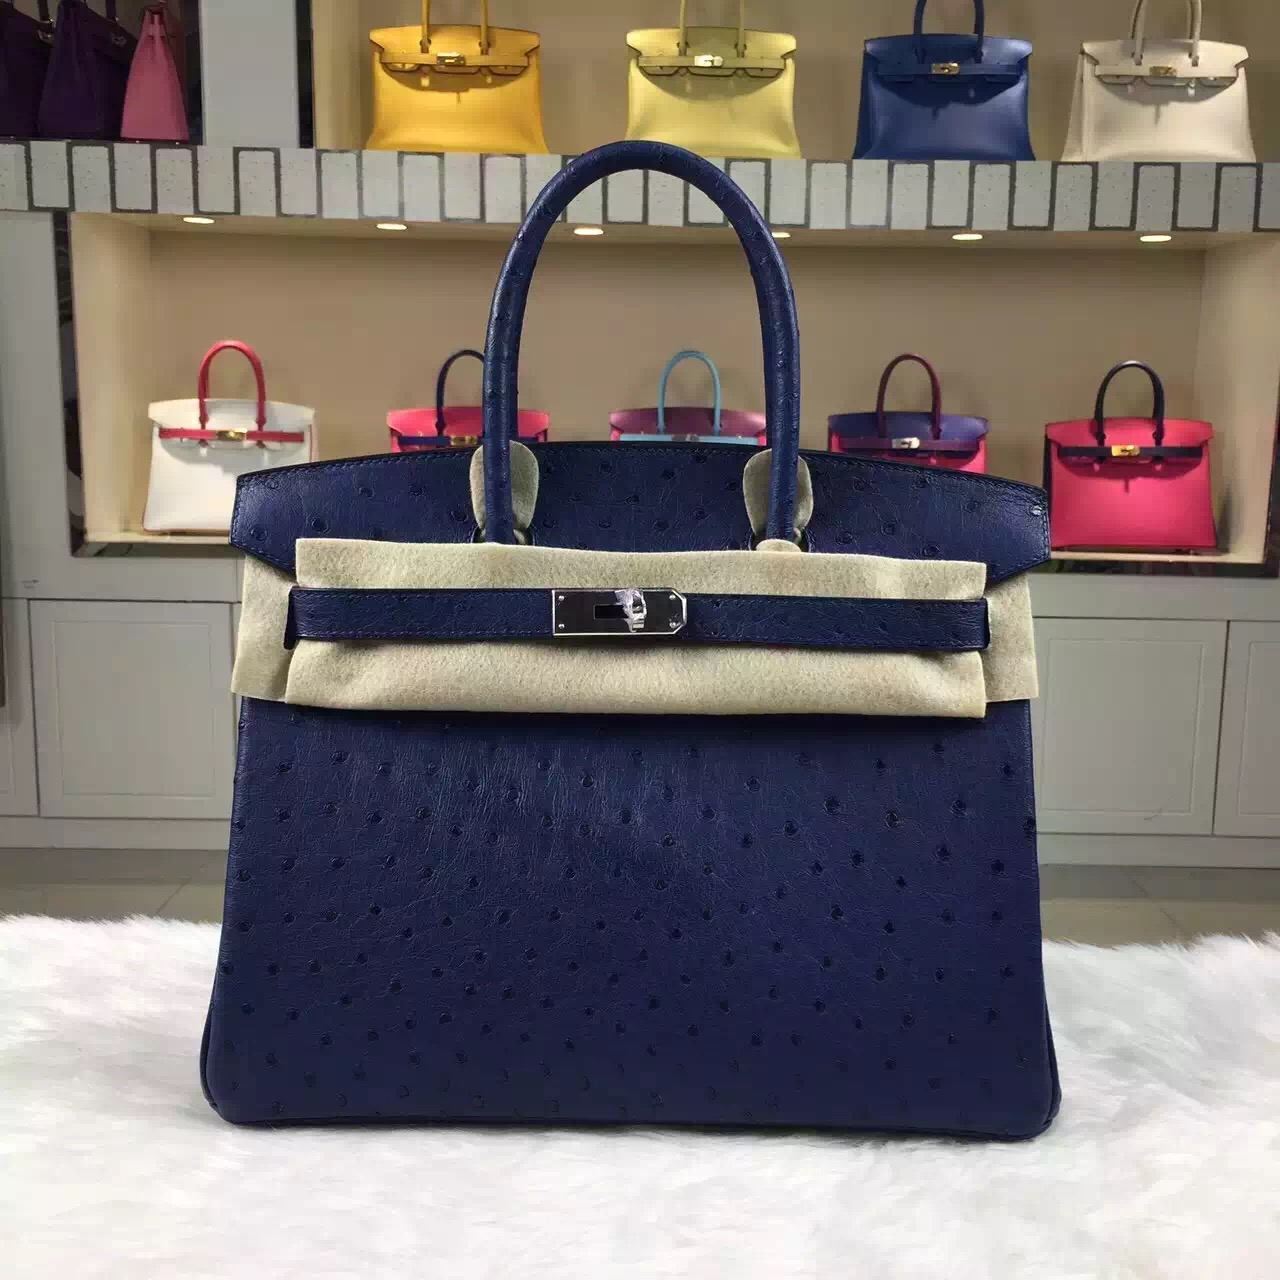 authentic hermes bag - Sale Hermes Birkin Bag30cm Blue Saphir Original Ostrich Leather �� HEMA